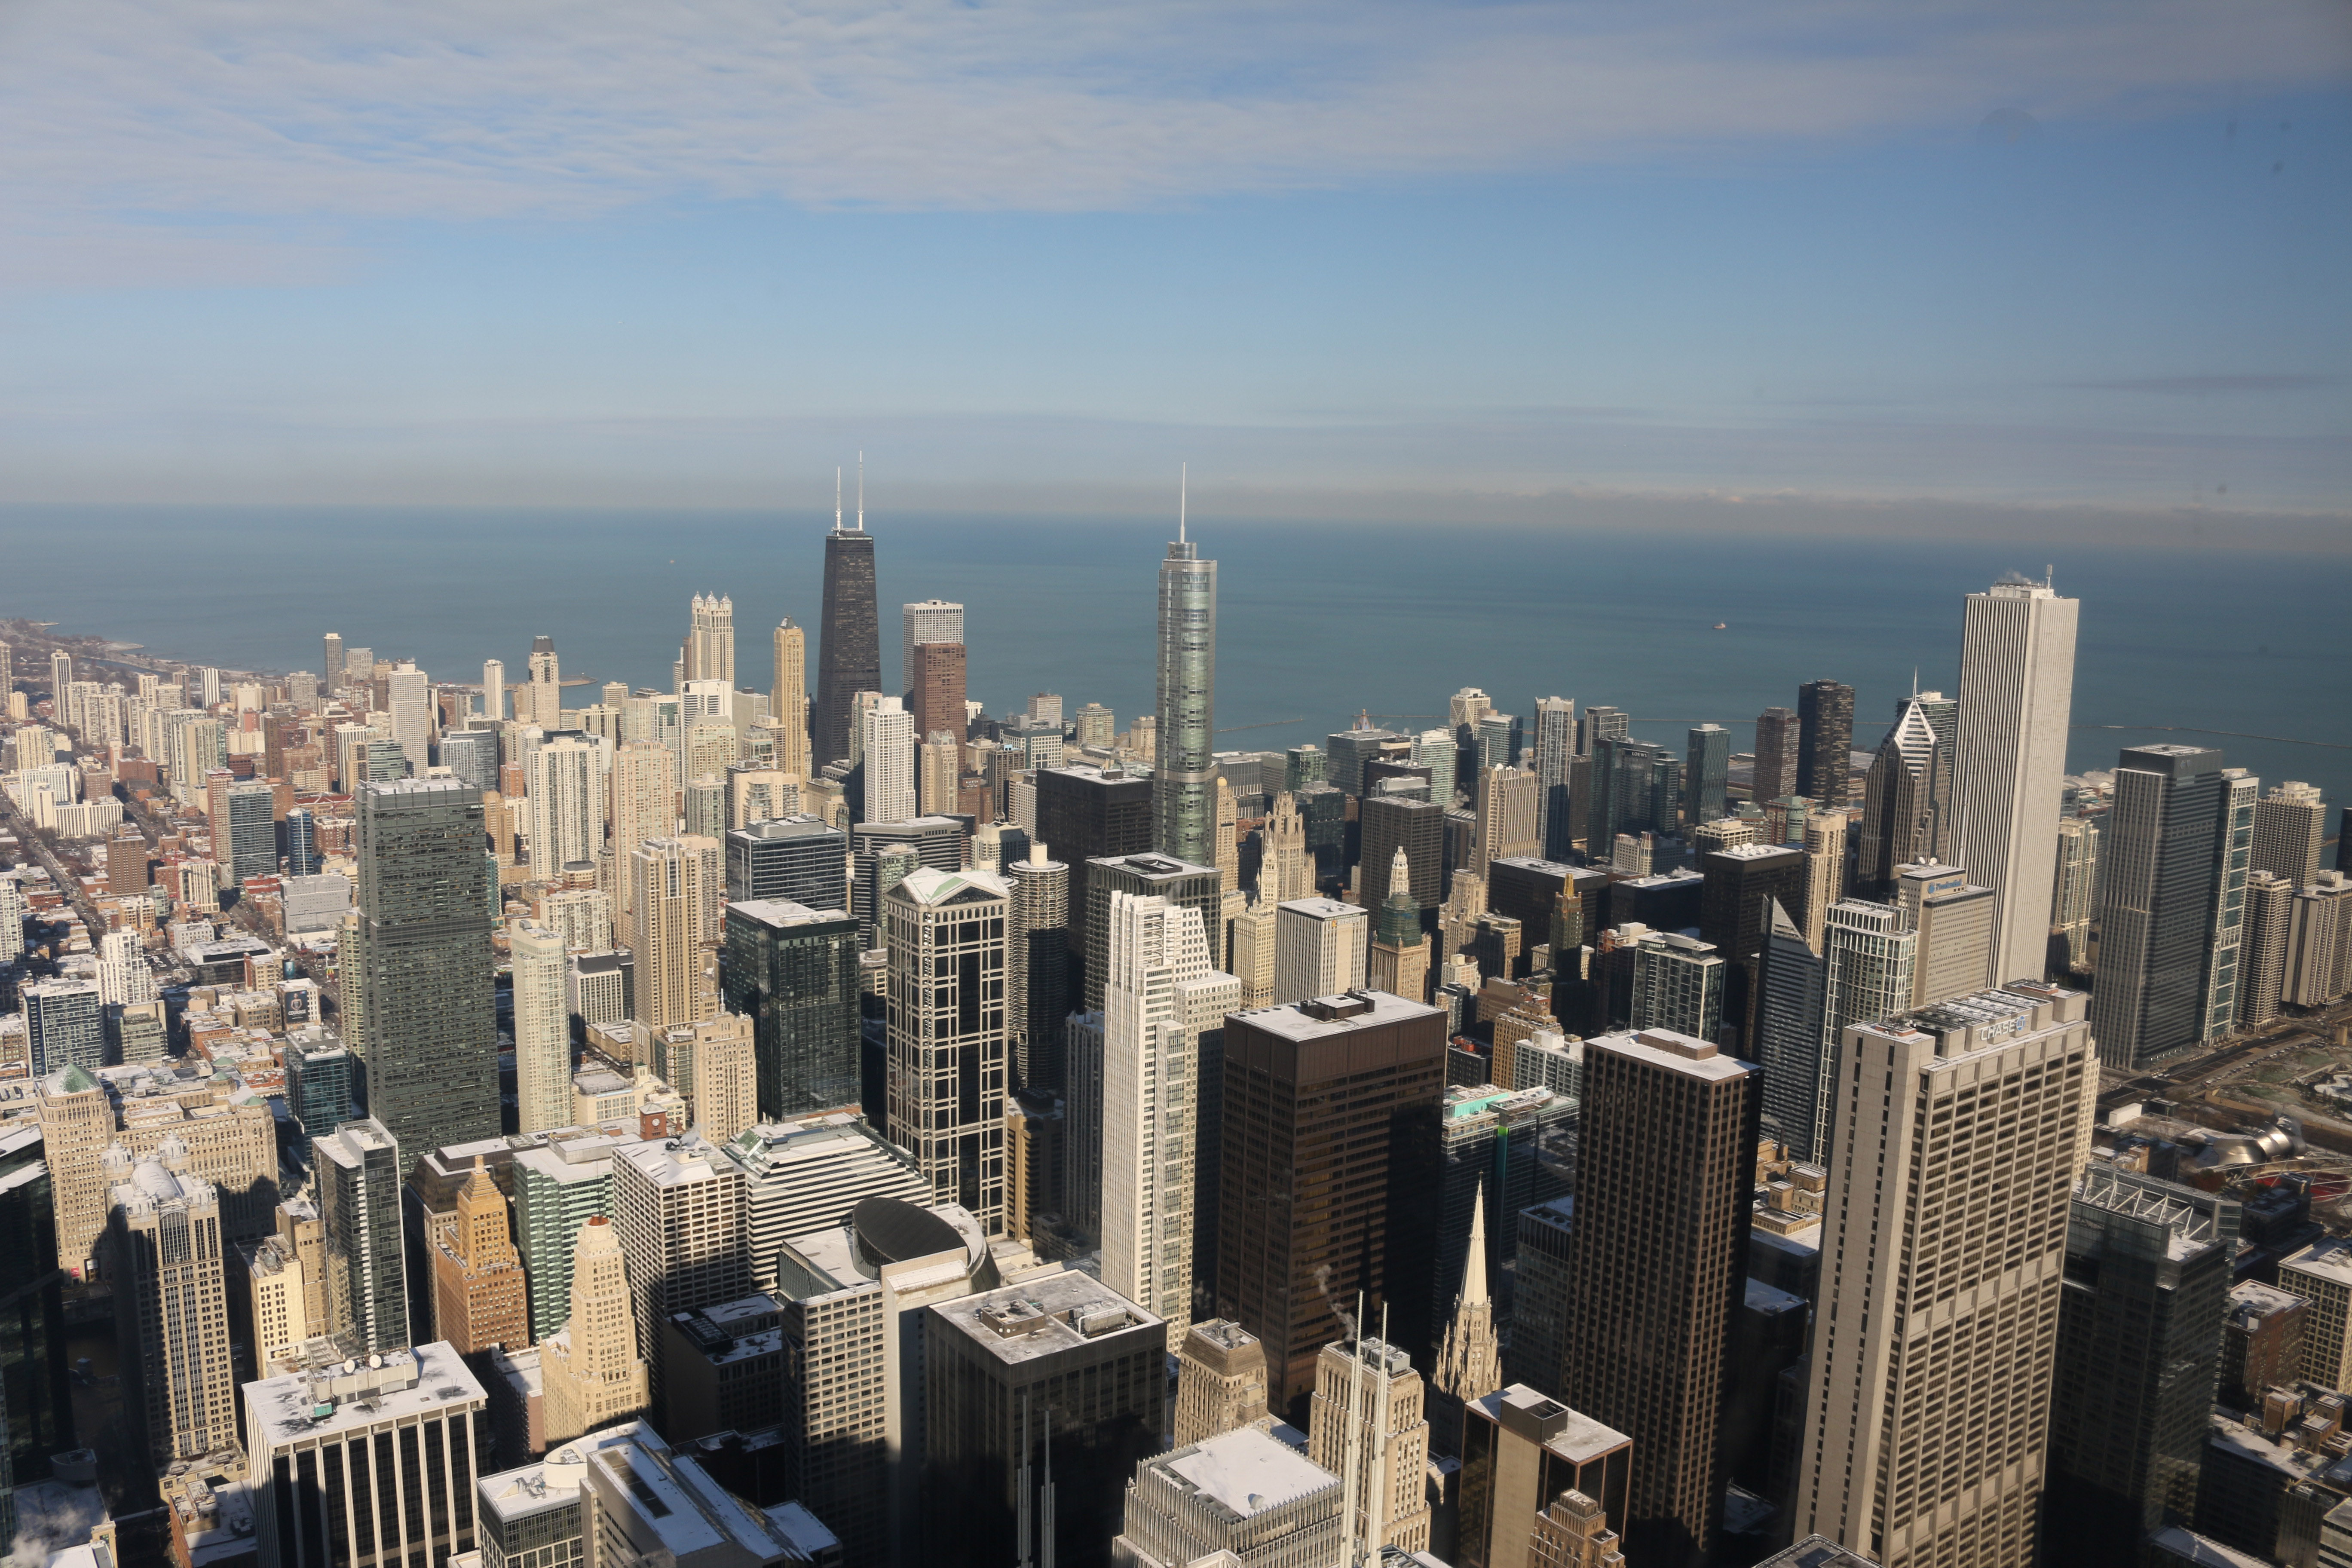 An aerial view of the Chicago skyline.